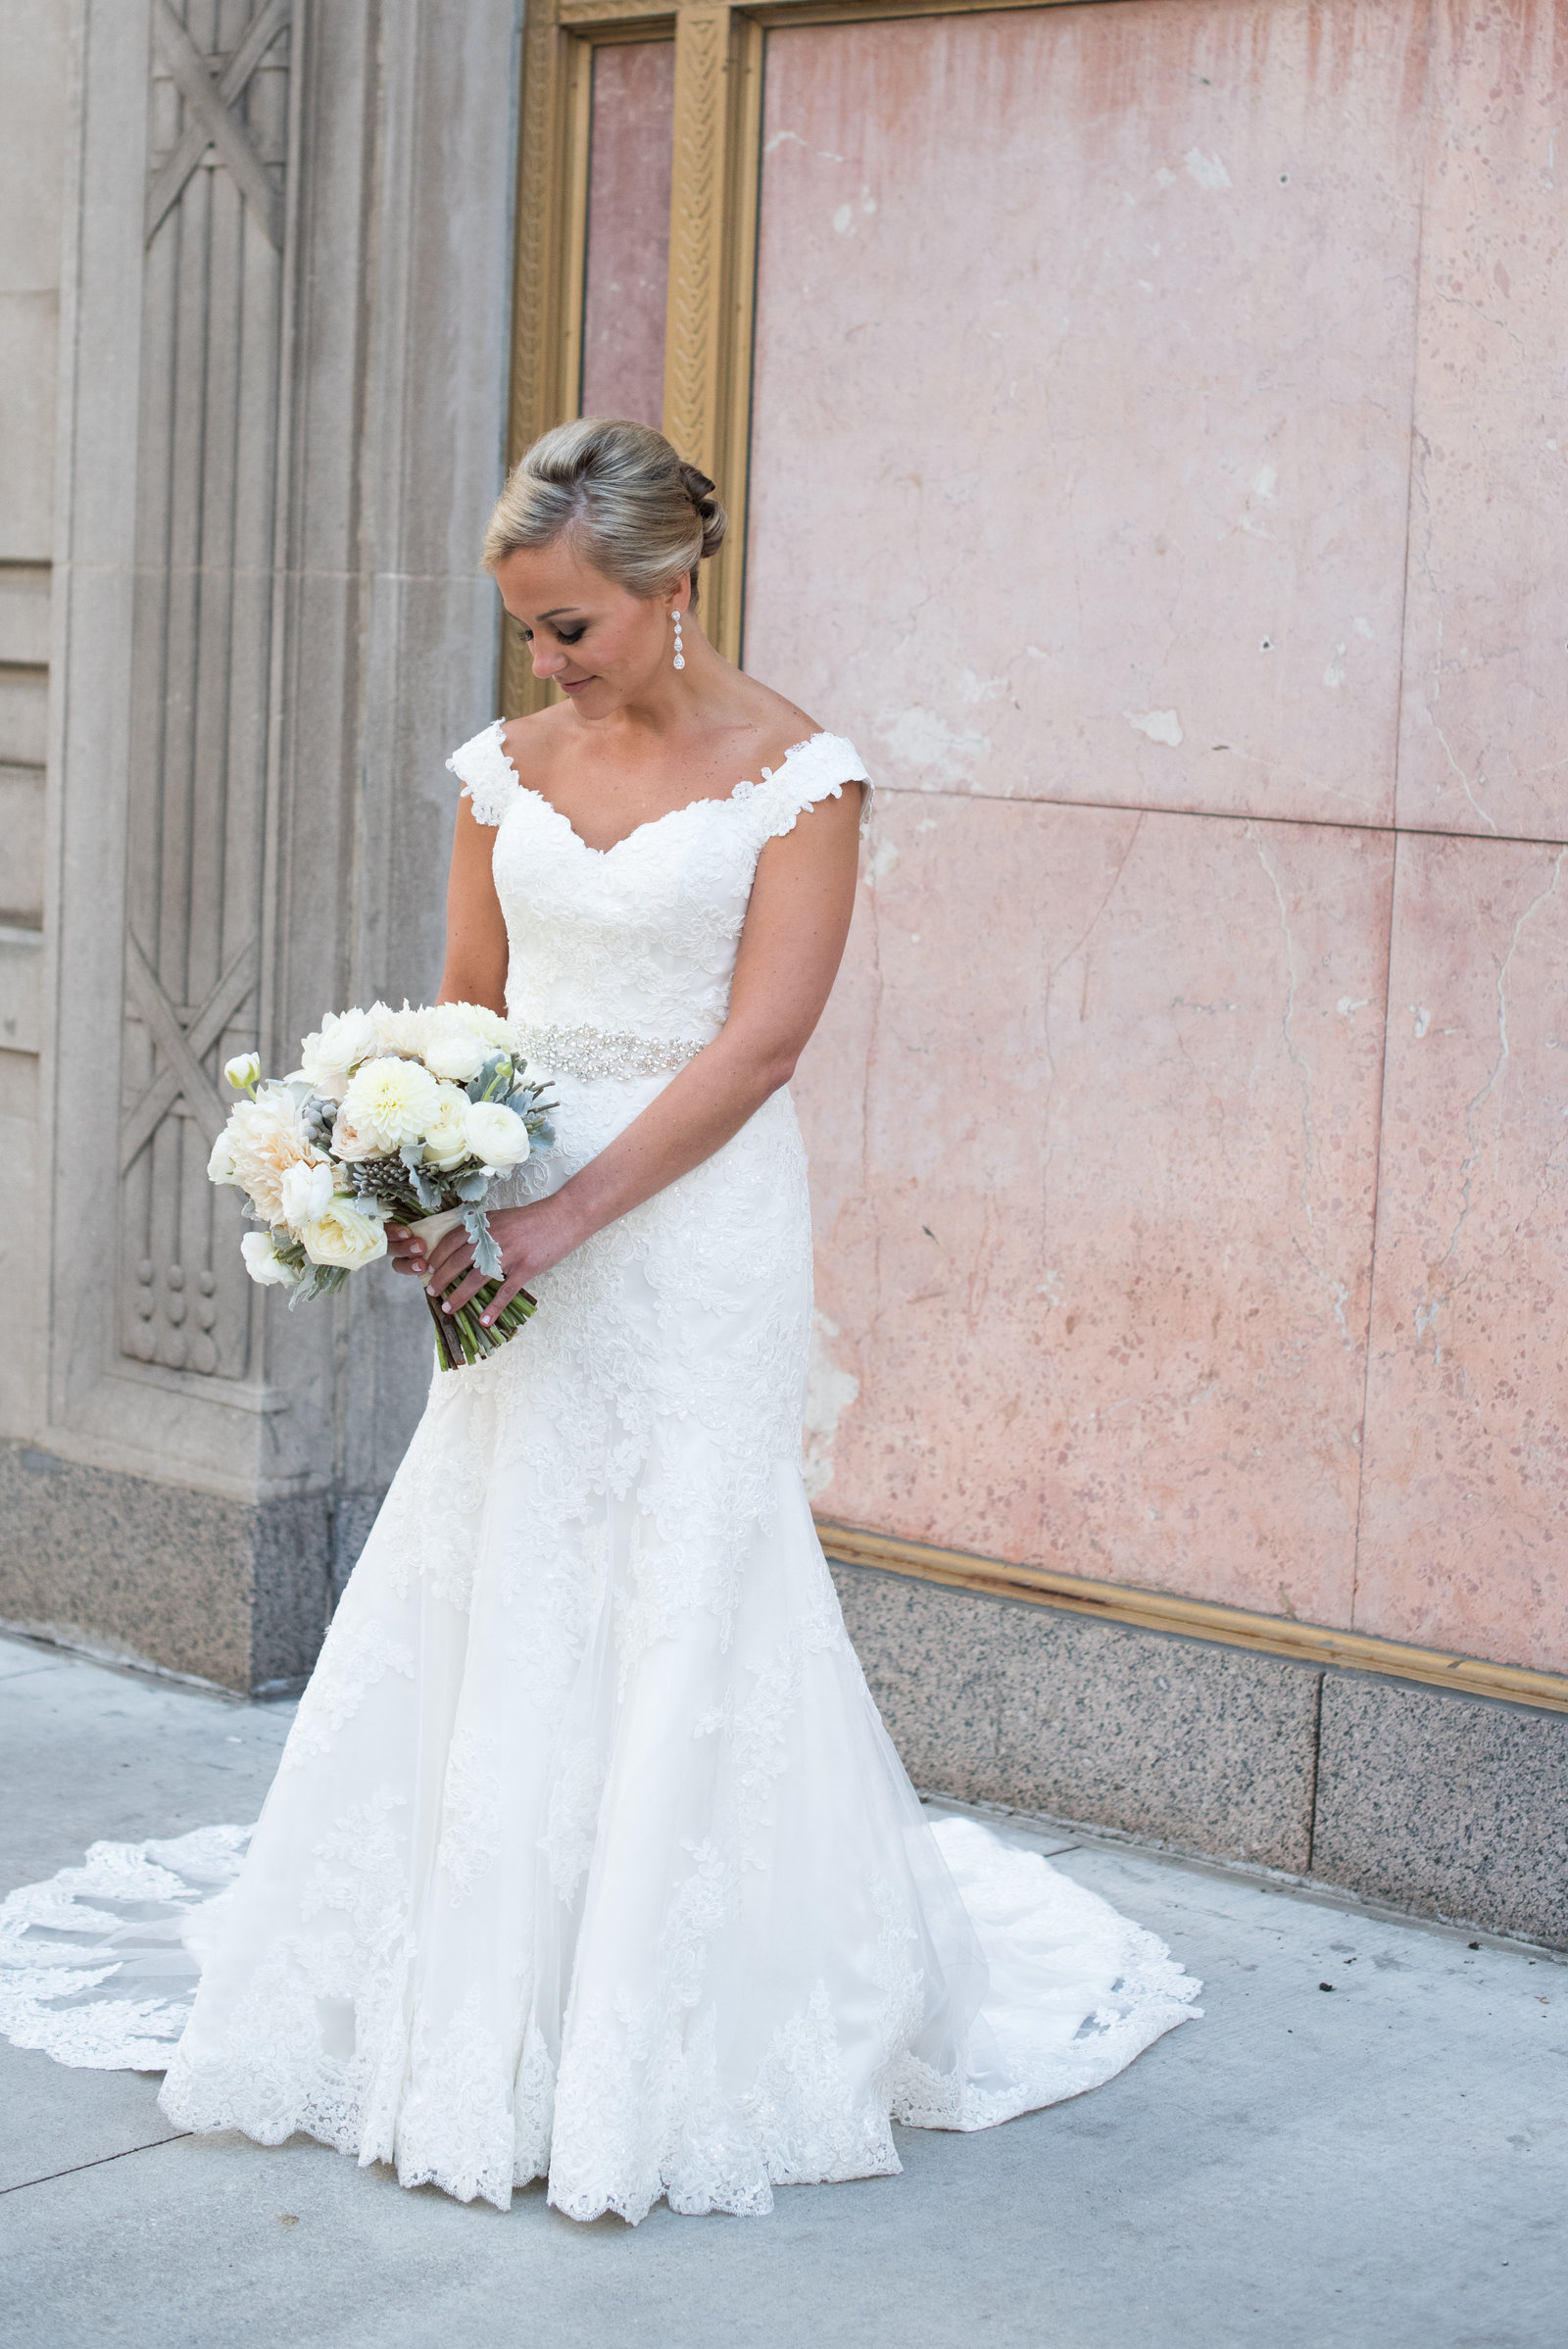 Chicago Wedding Photographer Alaina Bos-13